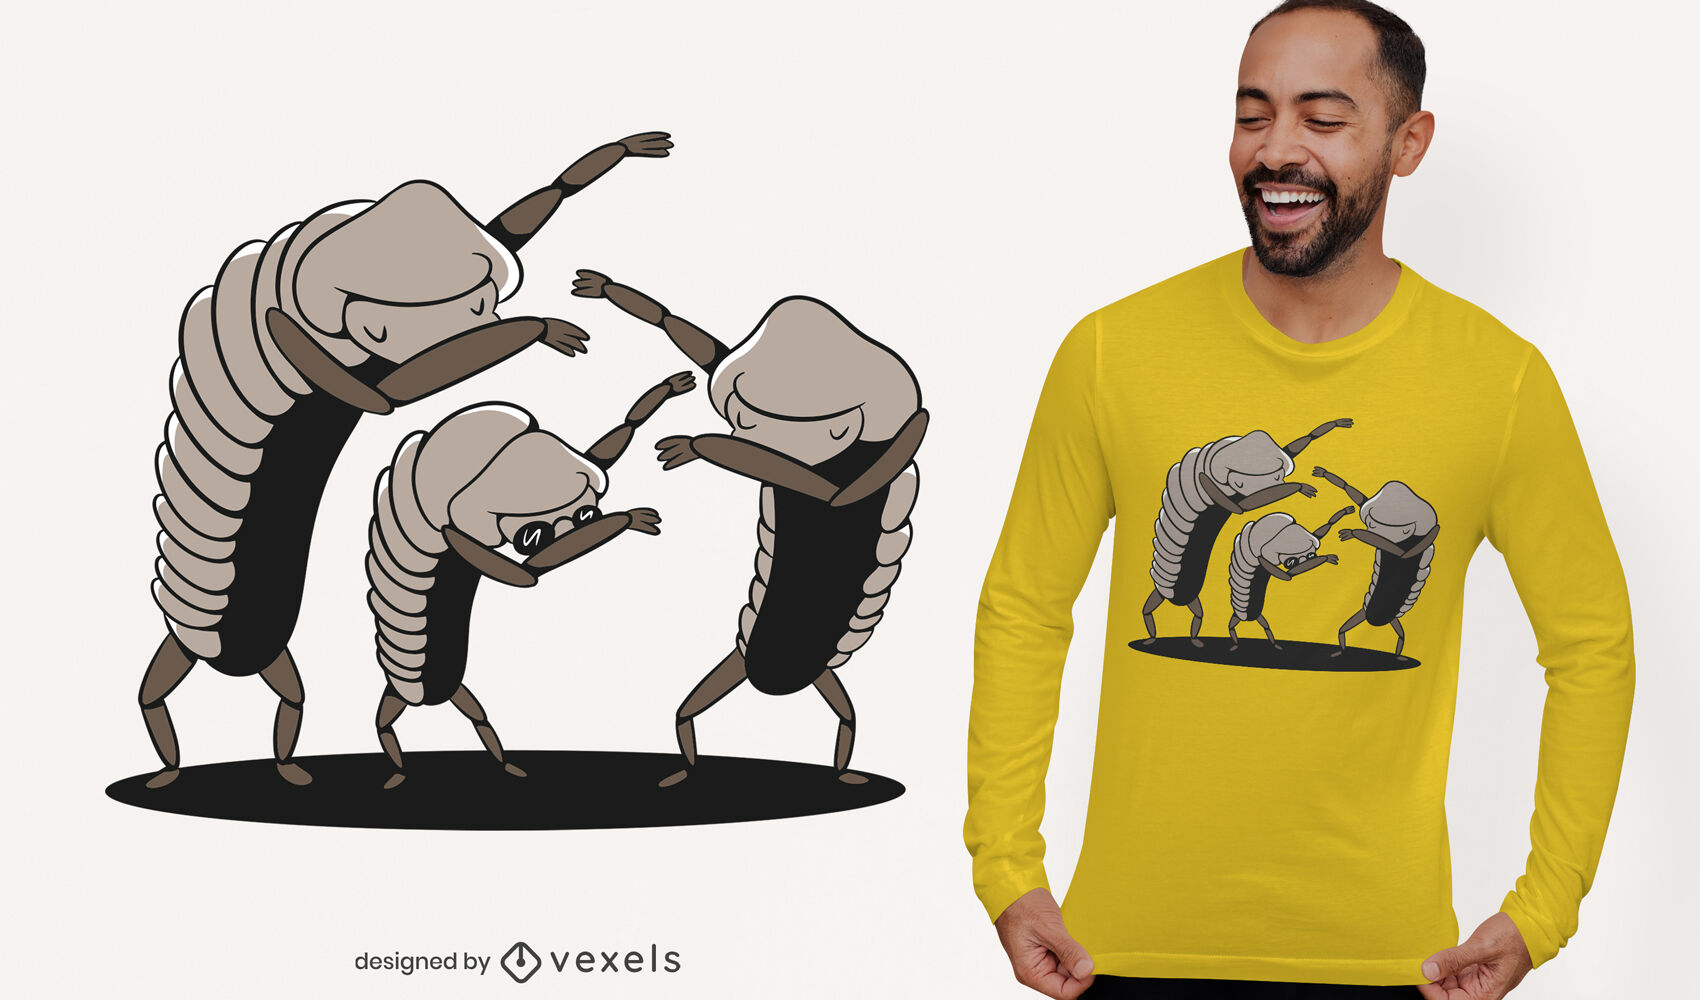 ANFRAGE Bugs betupfendes T-Shirt-Design